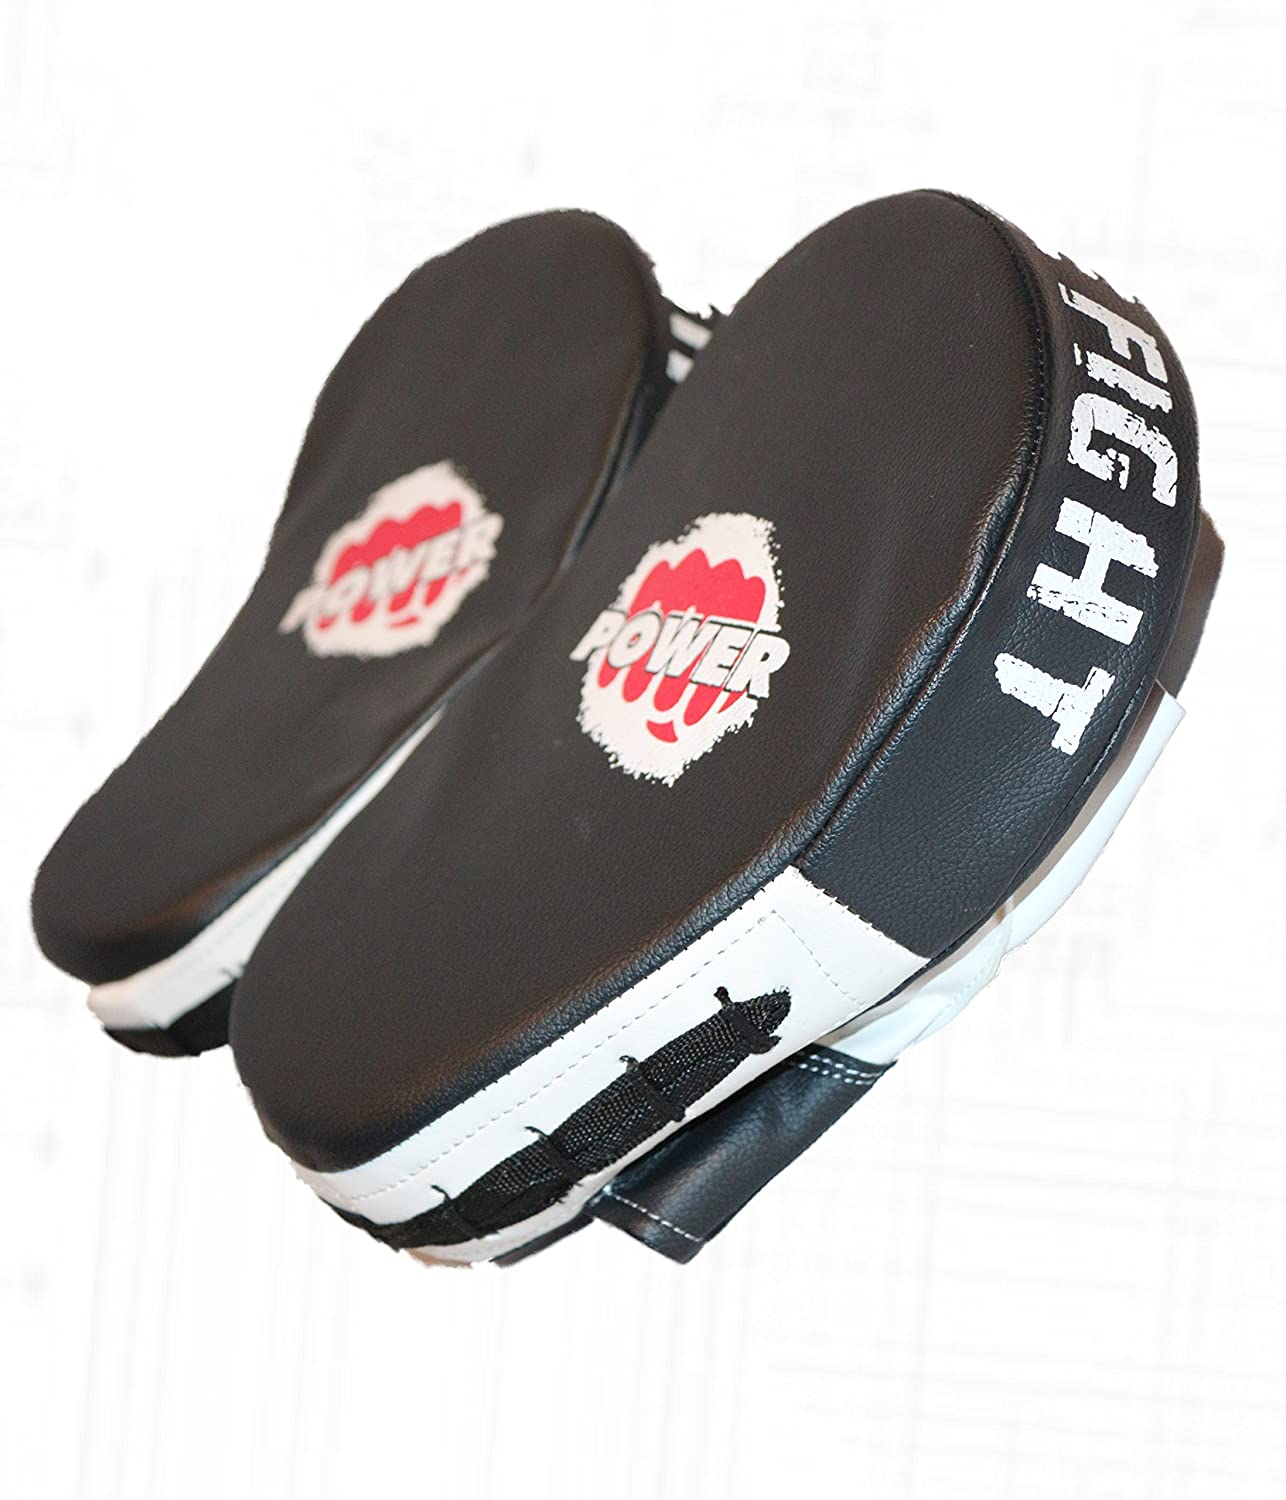 Focus Pads Curved Hook /& Jab Pad Rex Leather Mitts Black /& White